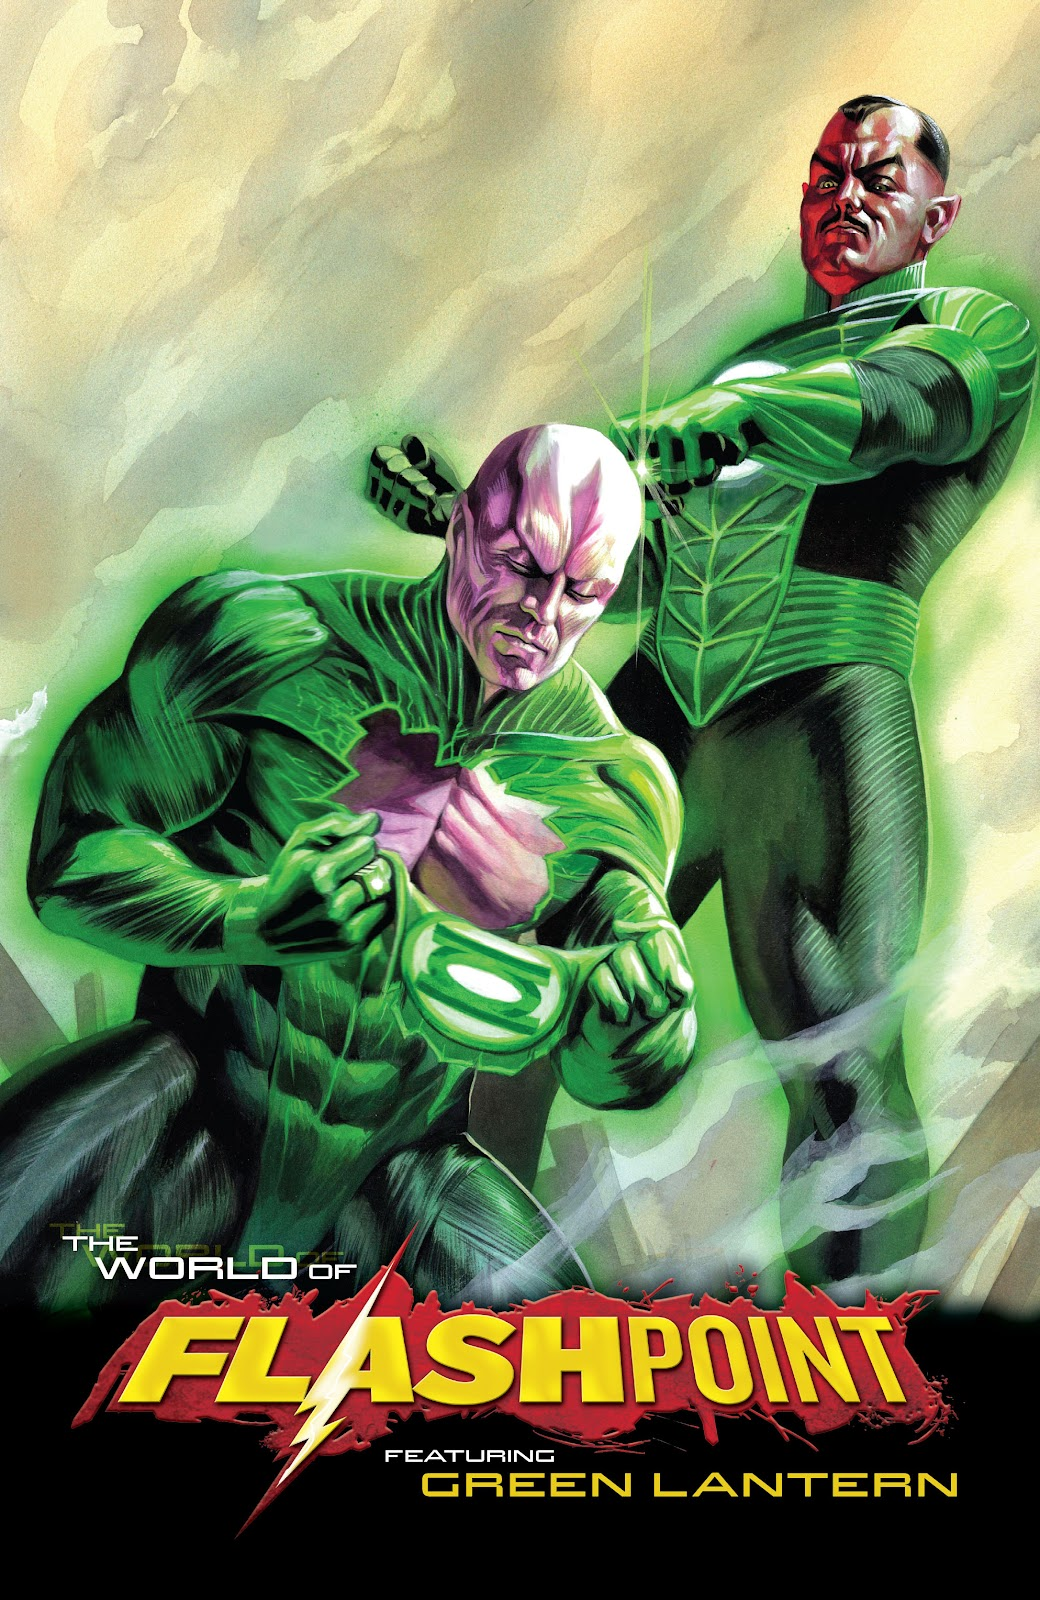 Flashpoint: The World of Flashpoint Featuring Green Lantern Full Page 2